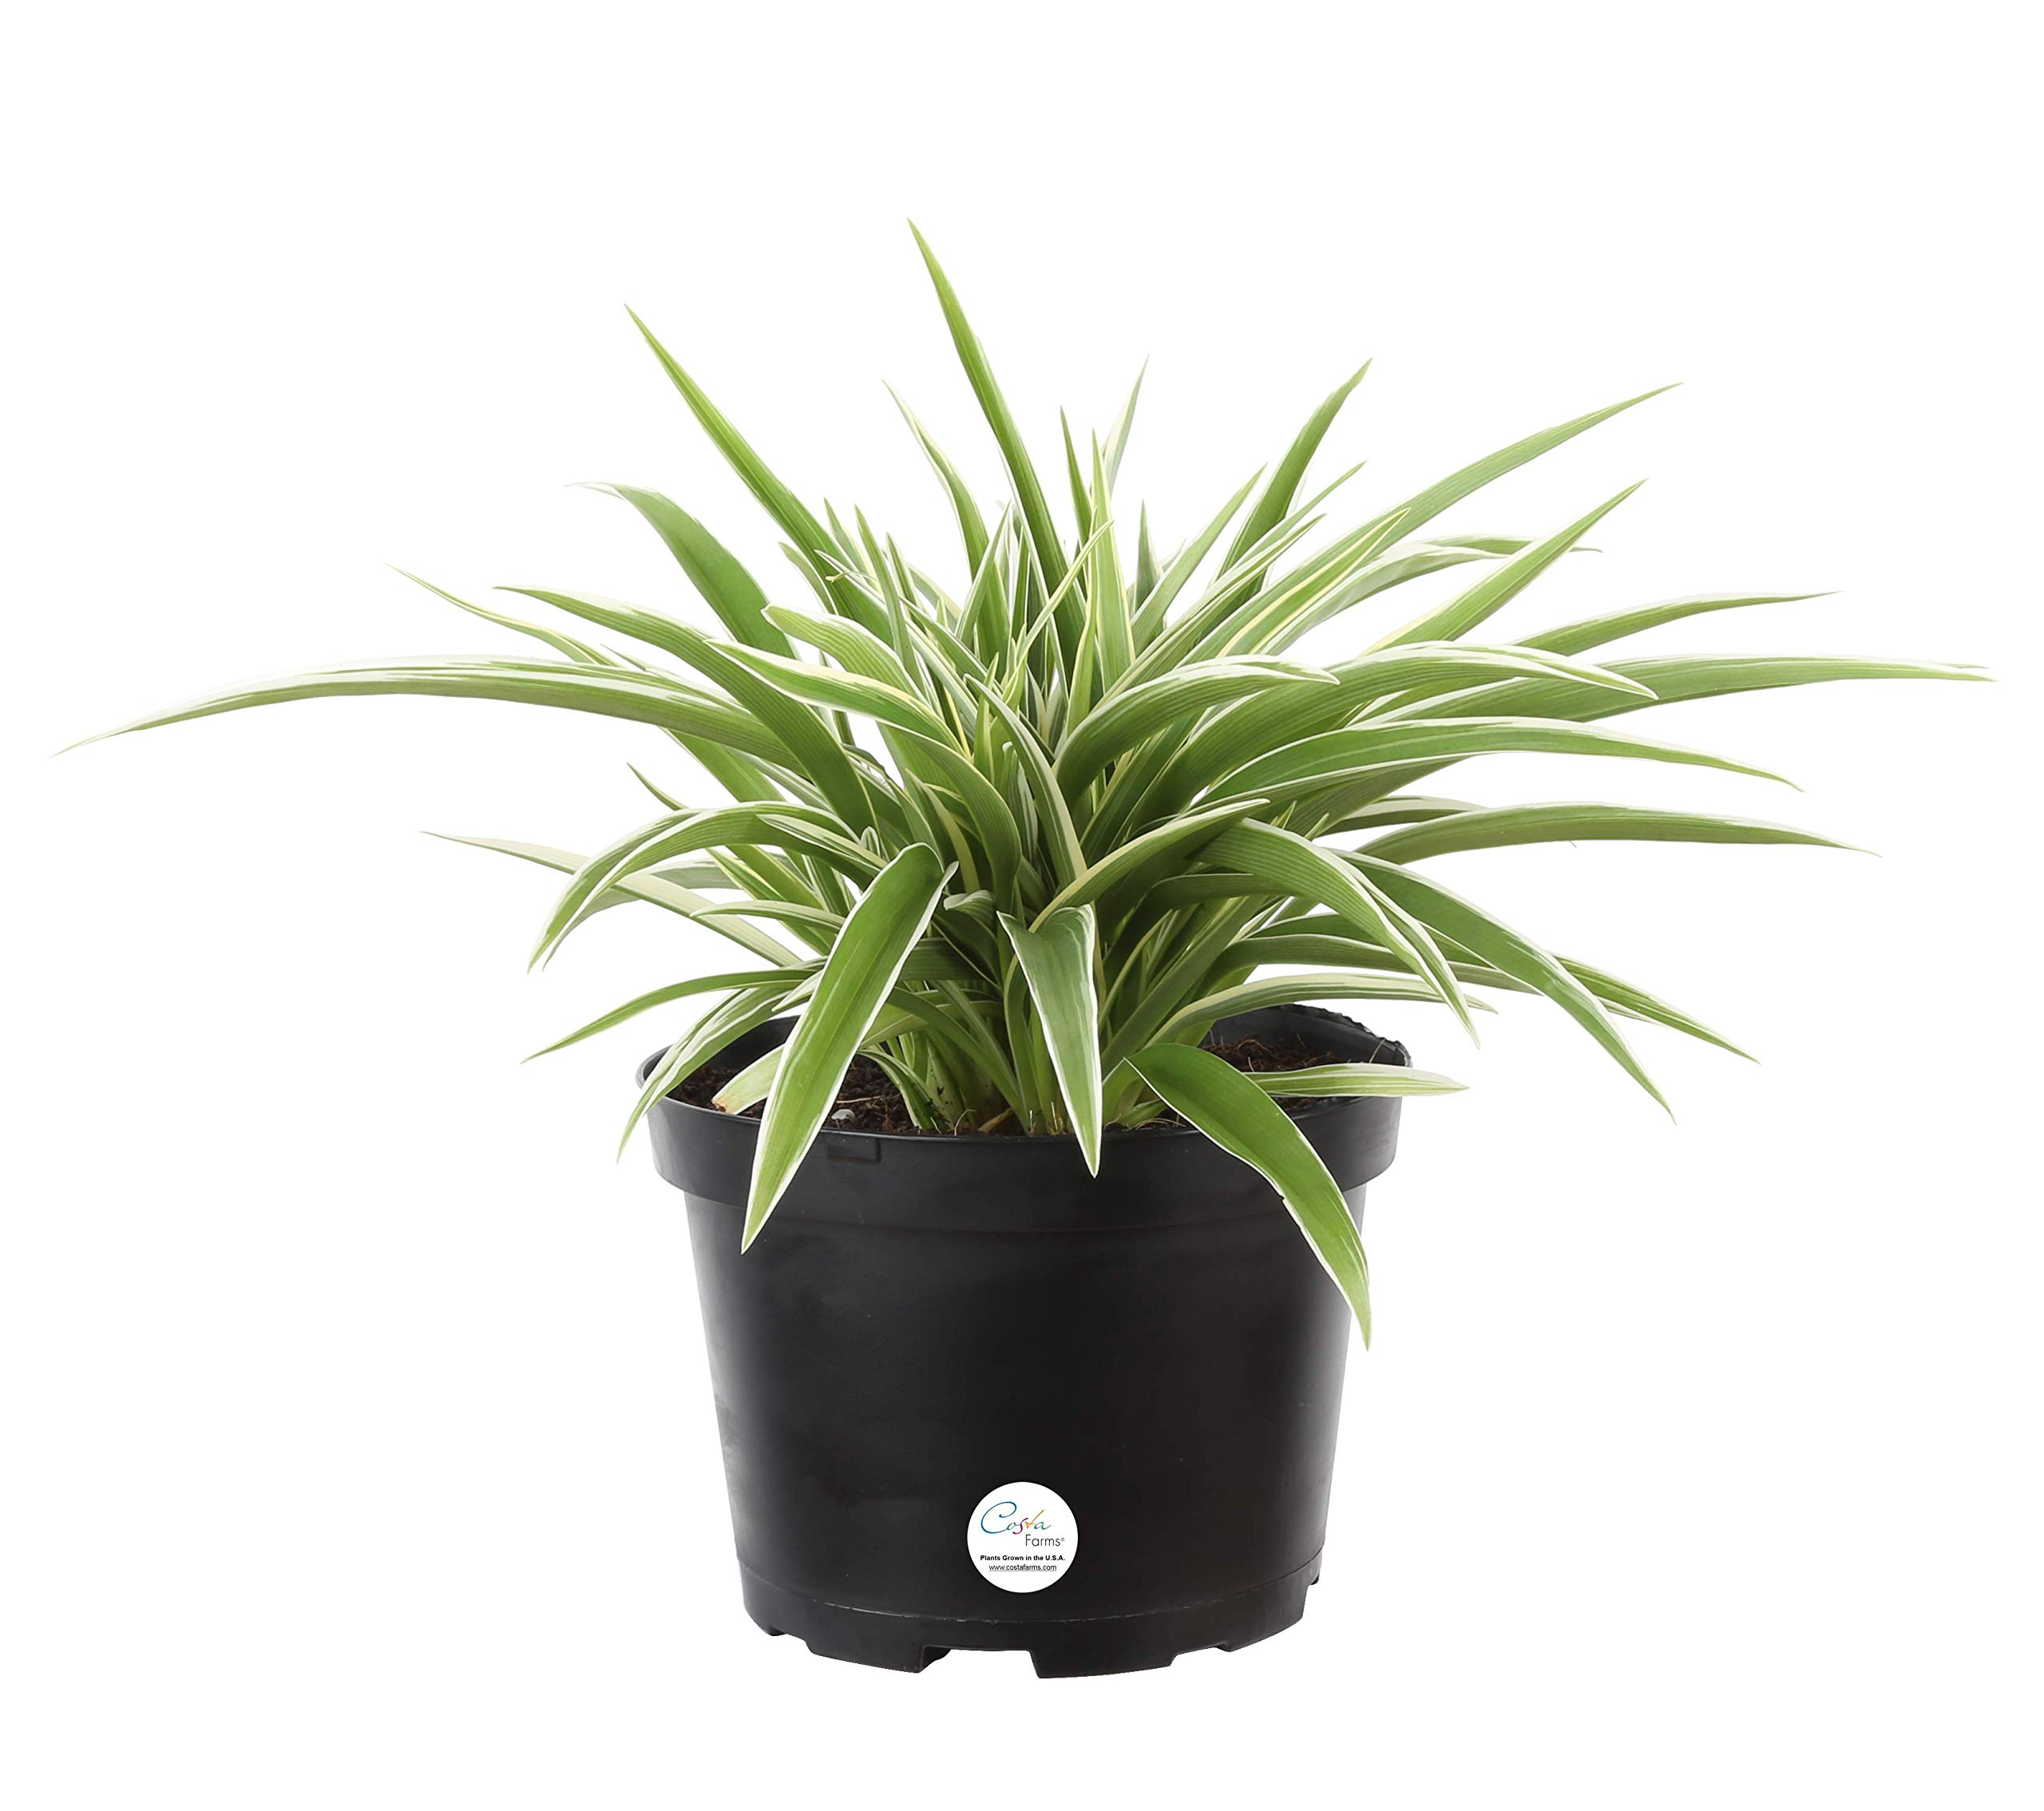 Costa Farms Chlorophytum comosum Spider Live Indoor Plant, 12-Inches Tall, Ships in Grower's Pot